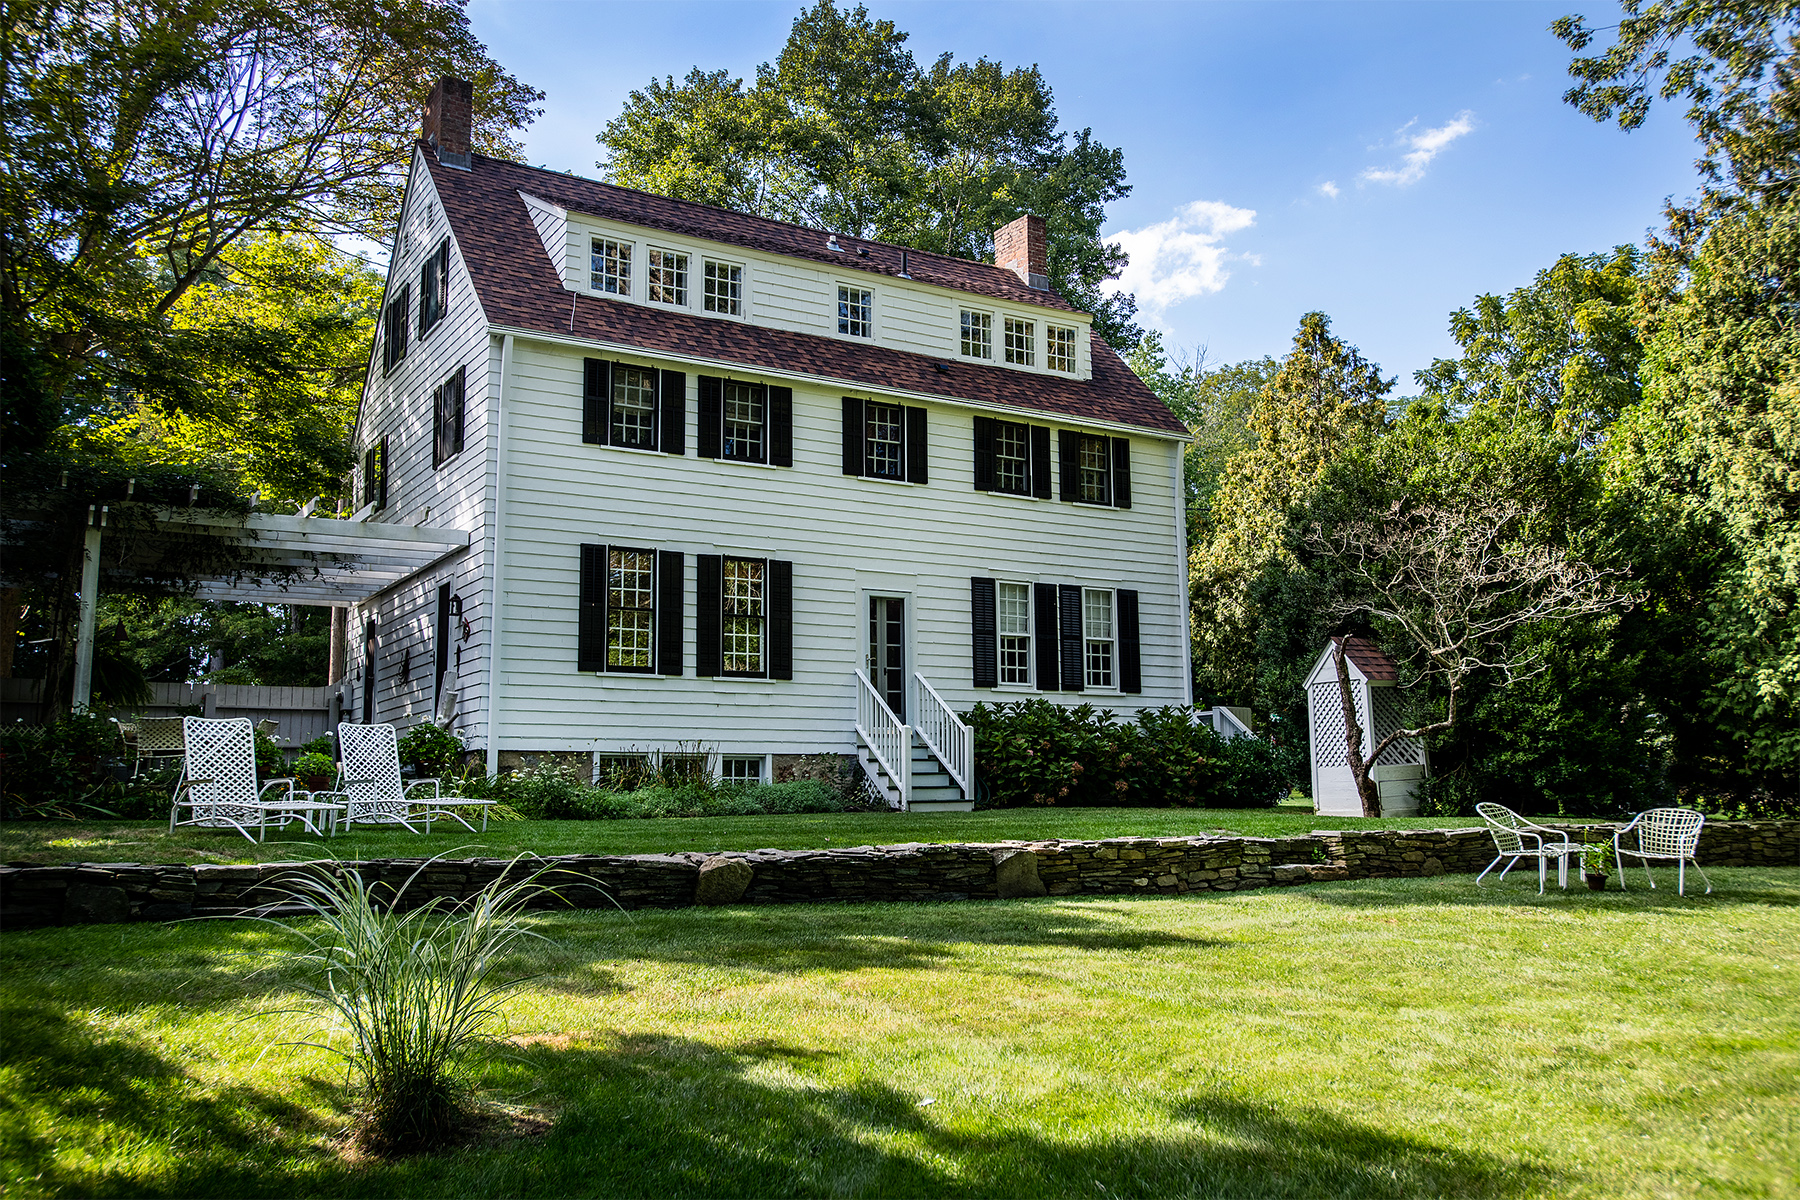 Single Family Homes for Sale at Historical Living with Modern Flair! 95 Lyme Street Old Lyme, Connecticut 06371 United States